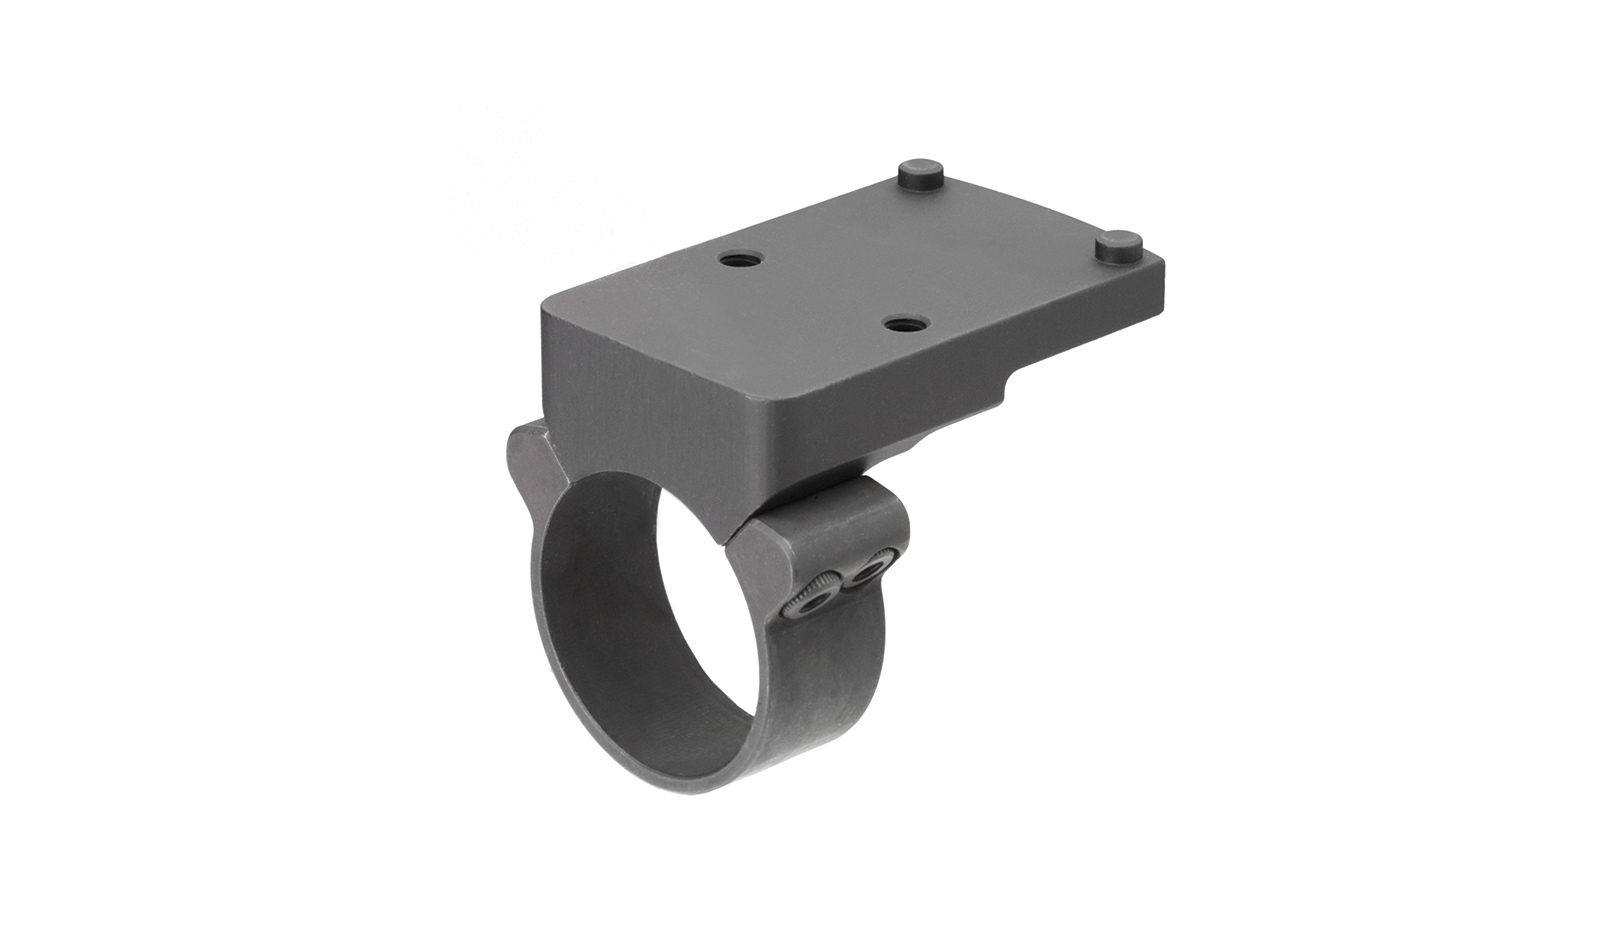 Trijicon RMR® Mount for 1.5x16, 1.5x24, 2x20, 3x24 & 3x30 ACOG® Models w/out Bosses